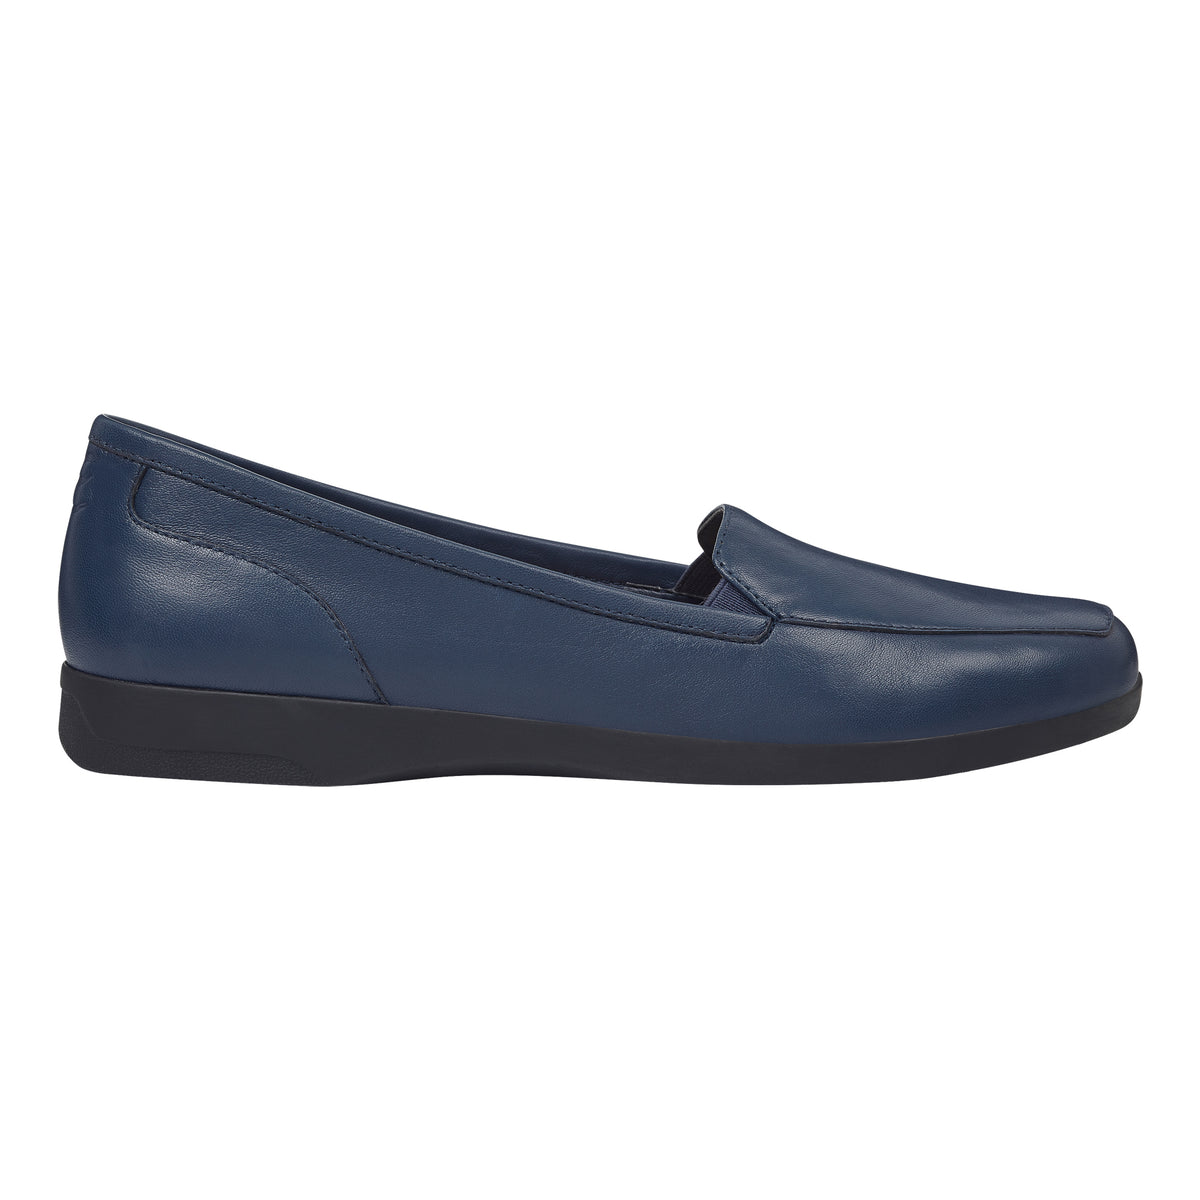 devitt-casual-flats-in-navy-leather